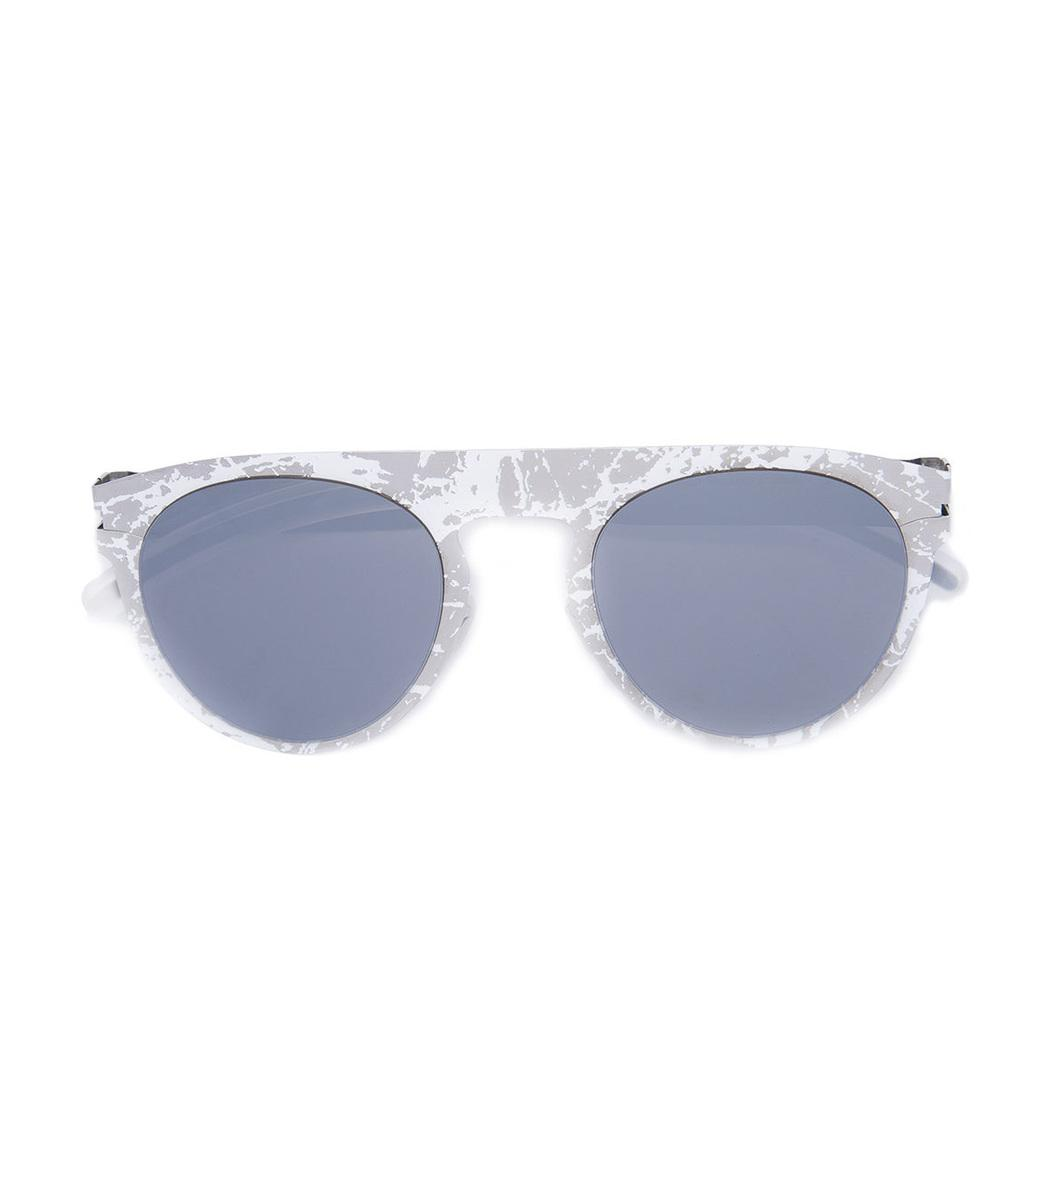 Clearance Pick A Best Explore Online Mykita x Maison Margiela Oval sunglasses - White Mykita Buy Cheap For Cheap New Styles Cheap Sale Store 5sph7PPnMy